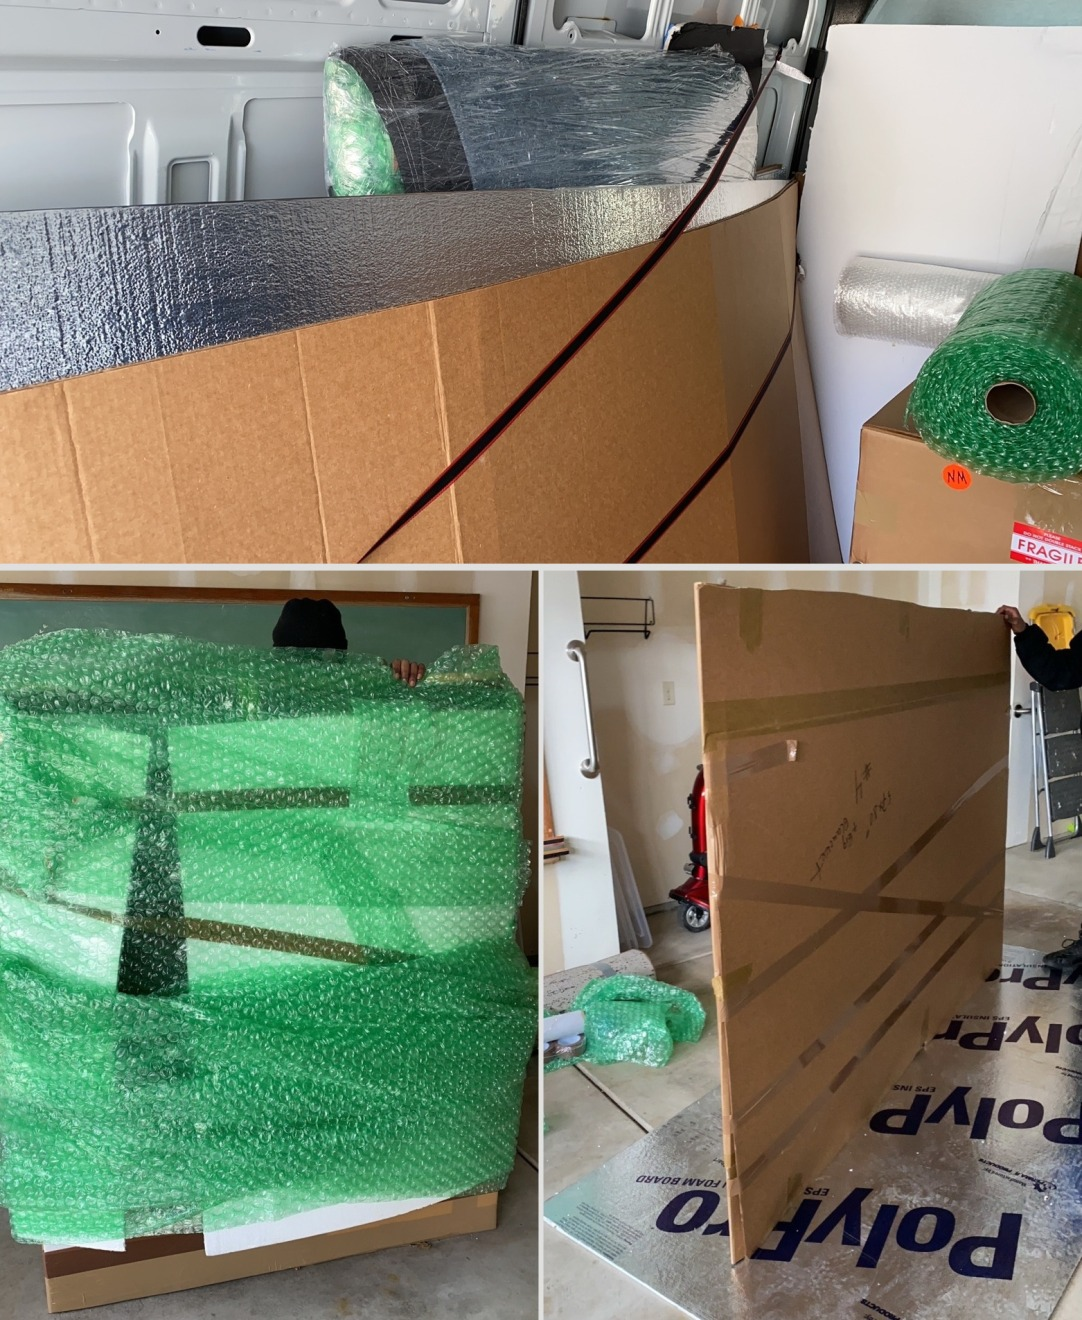 Packing & Moving Fragile Glass and Art Objects